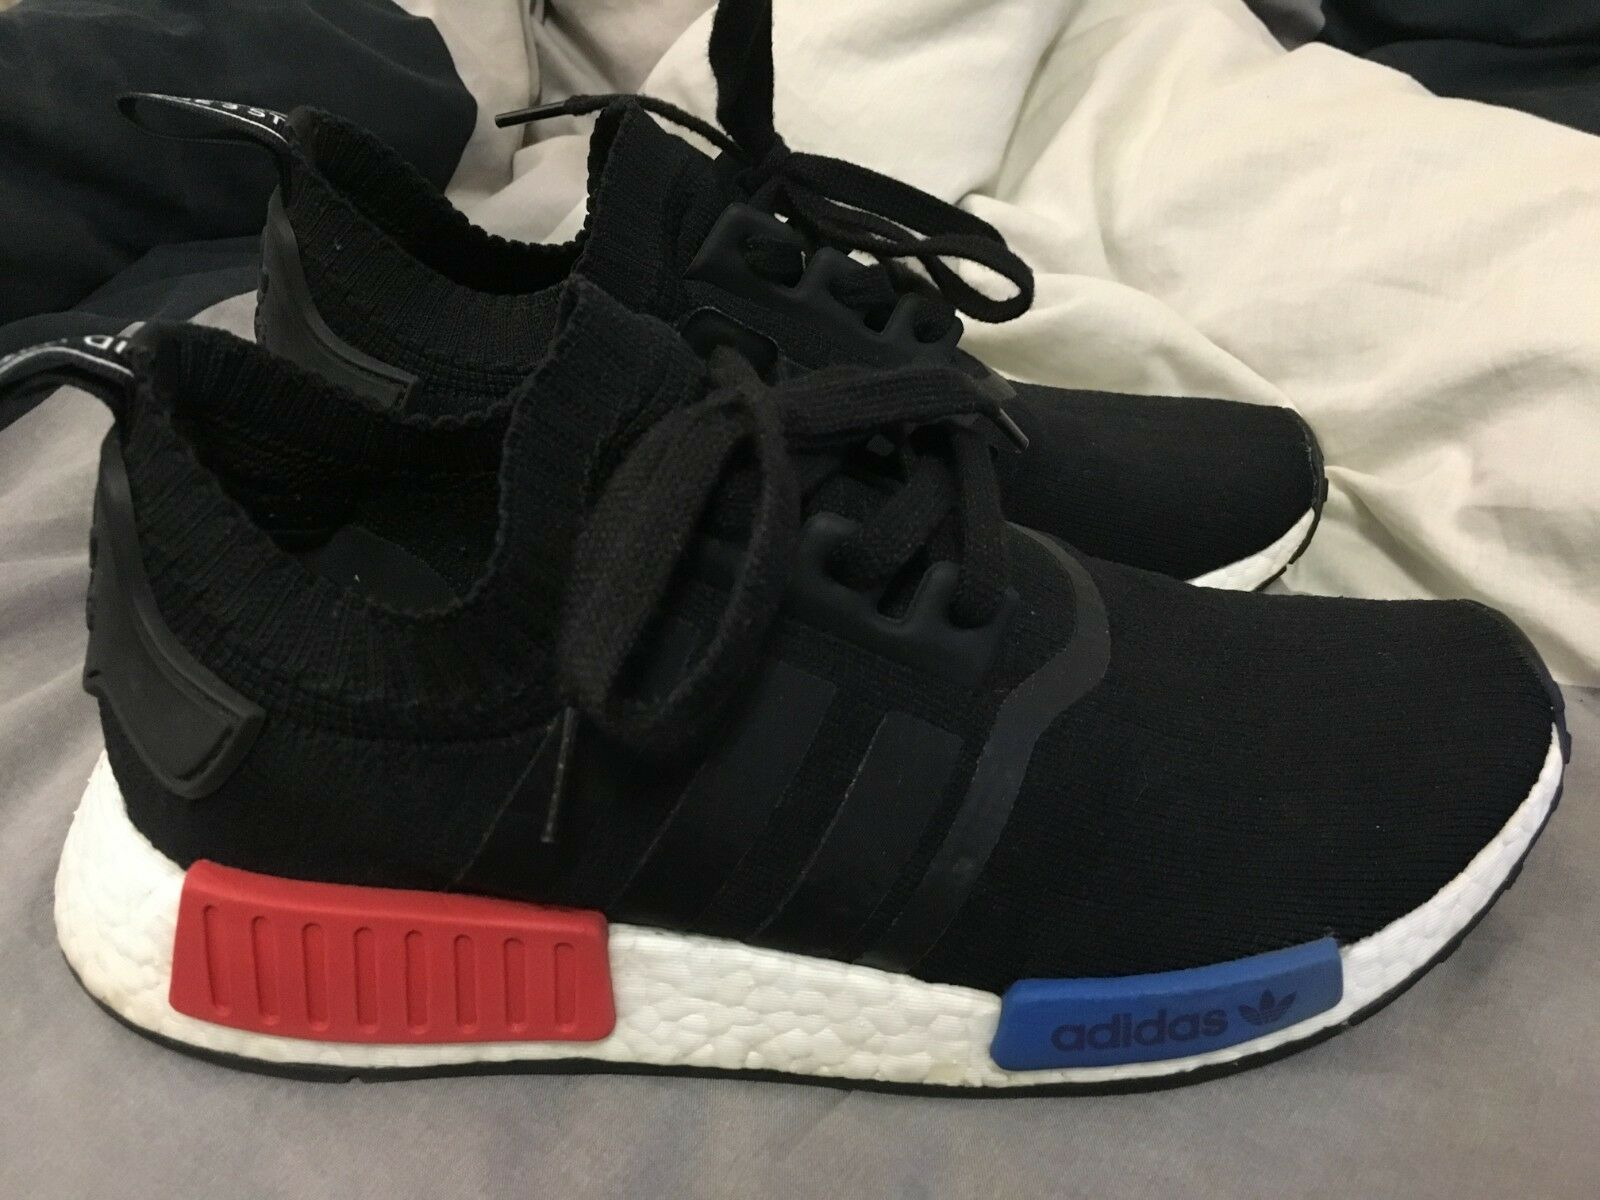 Adidas Shoes Men NMD R1 Primeknit Black Blue Red Casual Shoes Adidas Sz 9 Originals S79168 OG f0713c